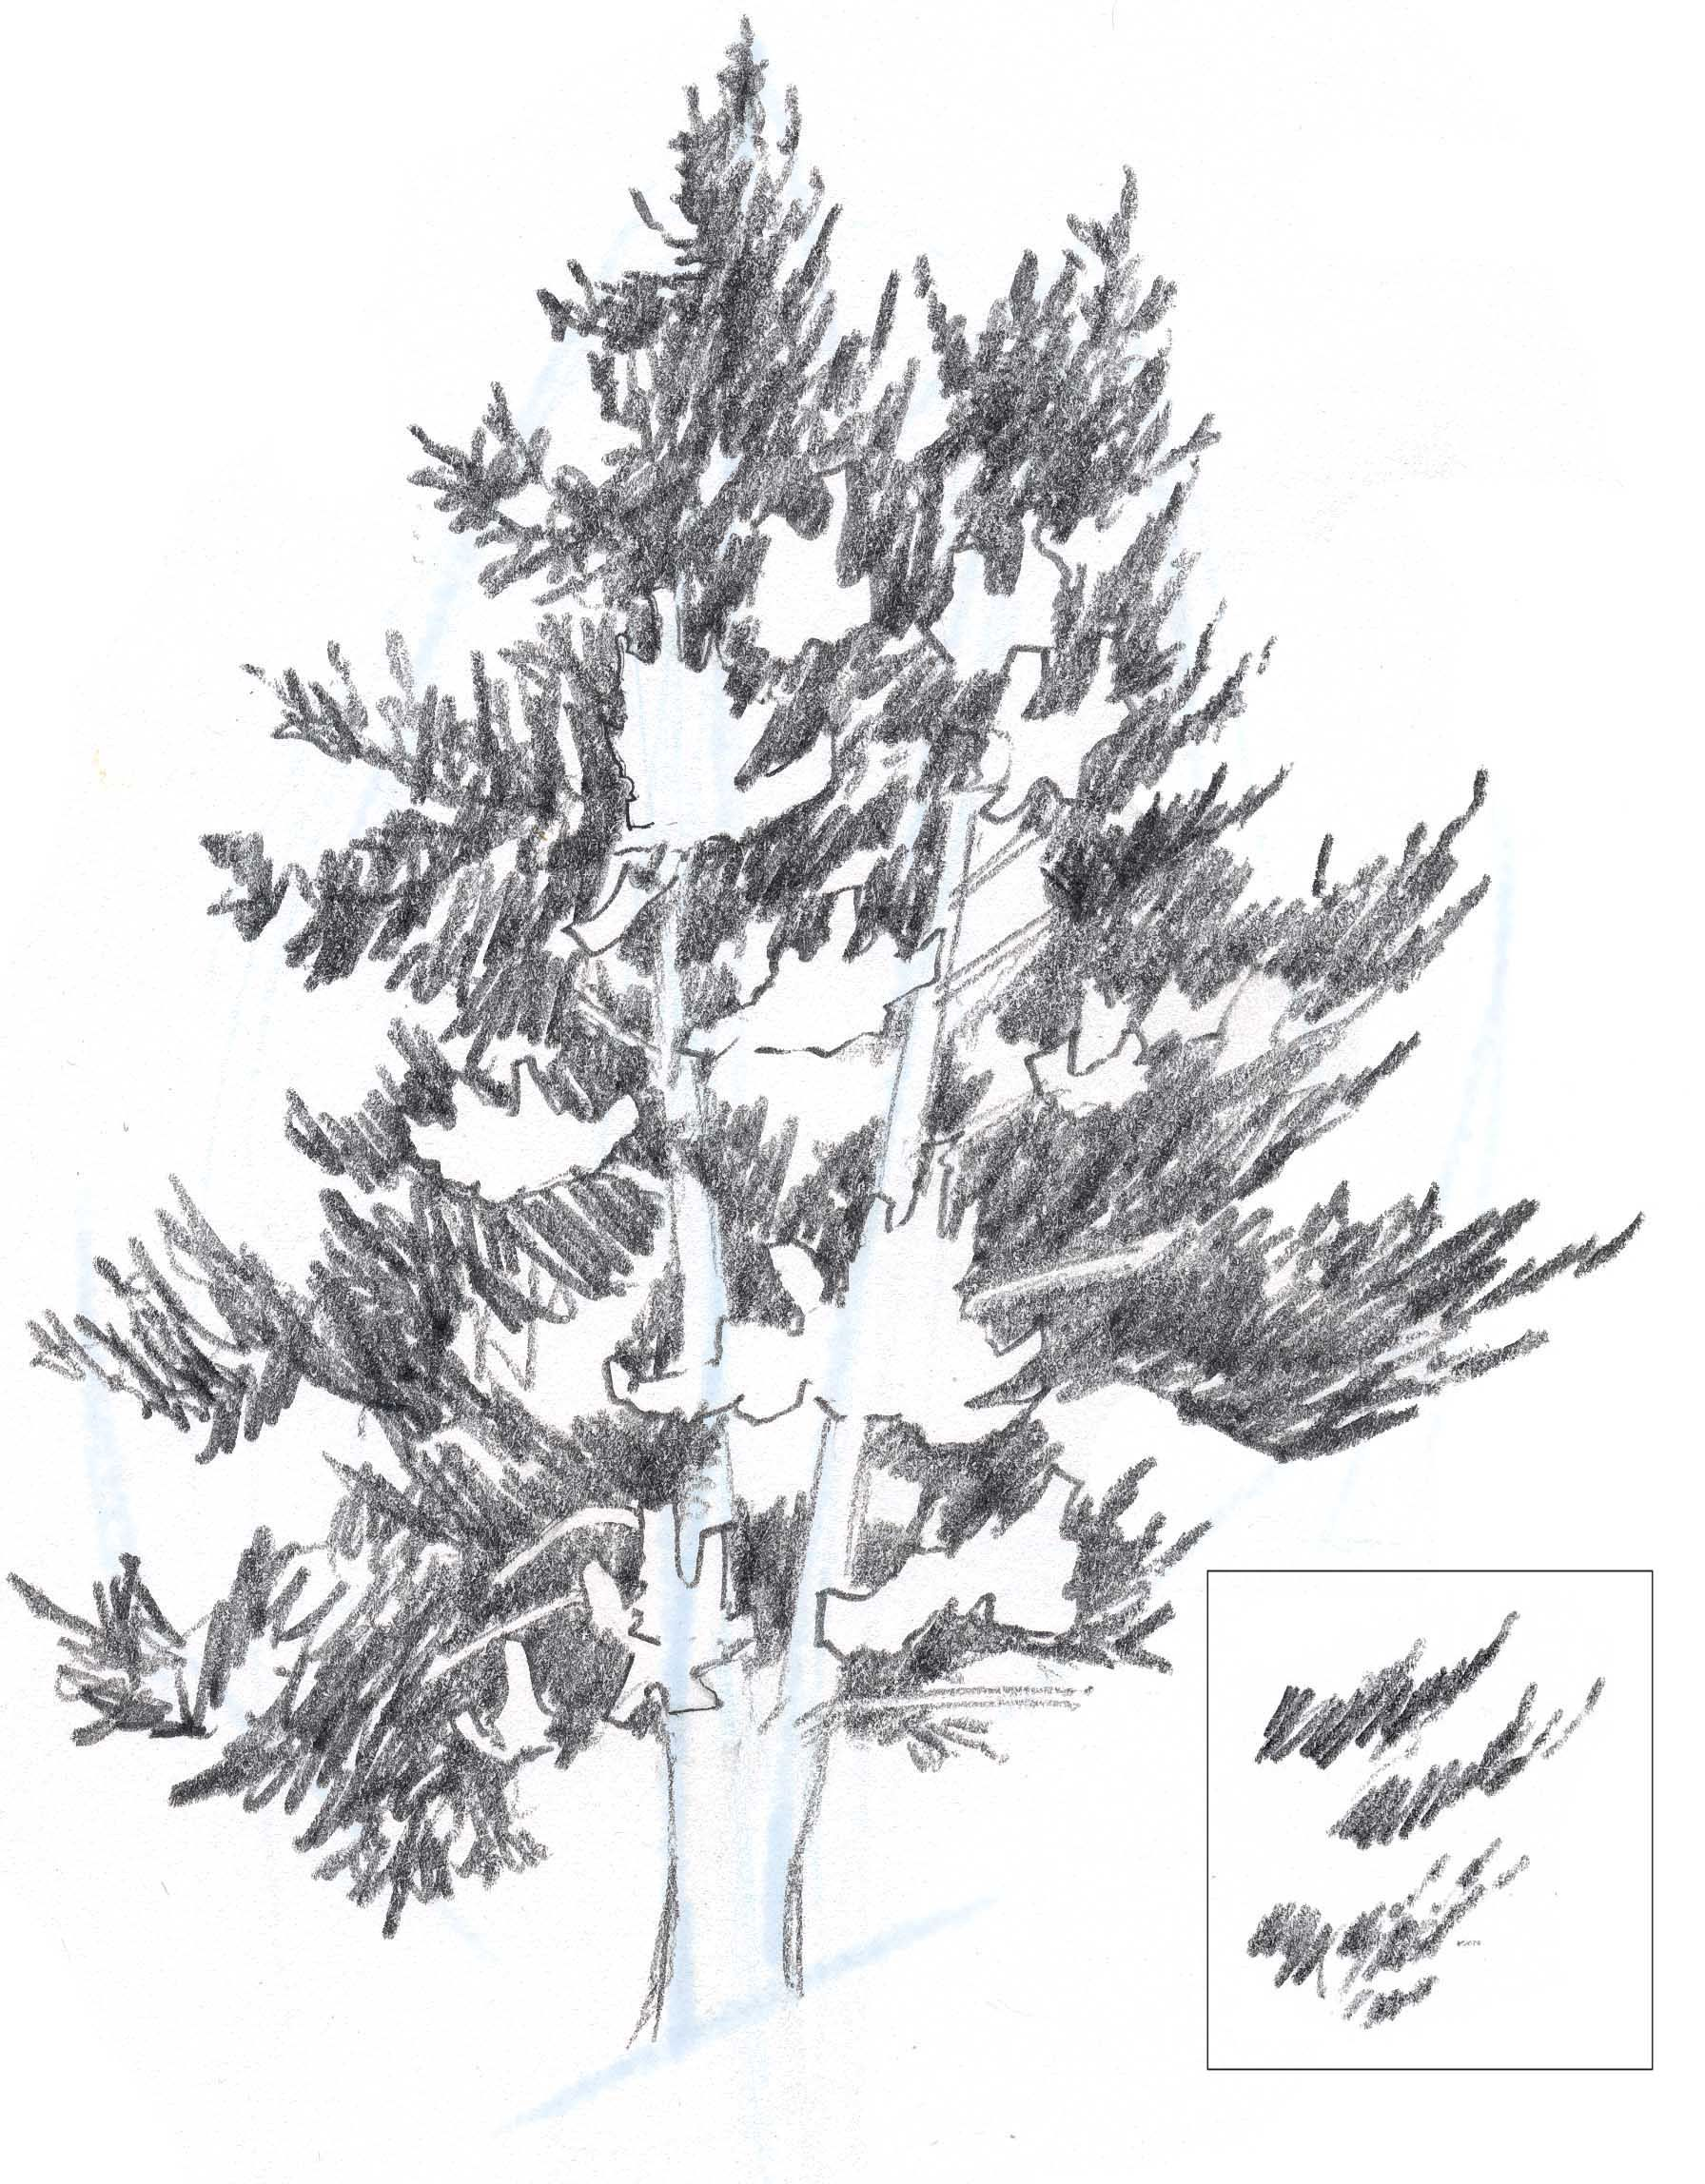 Find This Pin And More On How To Draw Realistic Trees, Plants Bushes And  Rocks